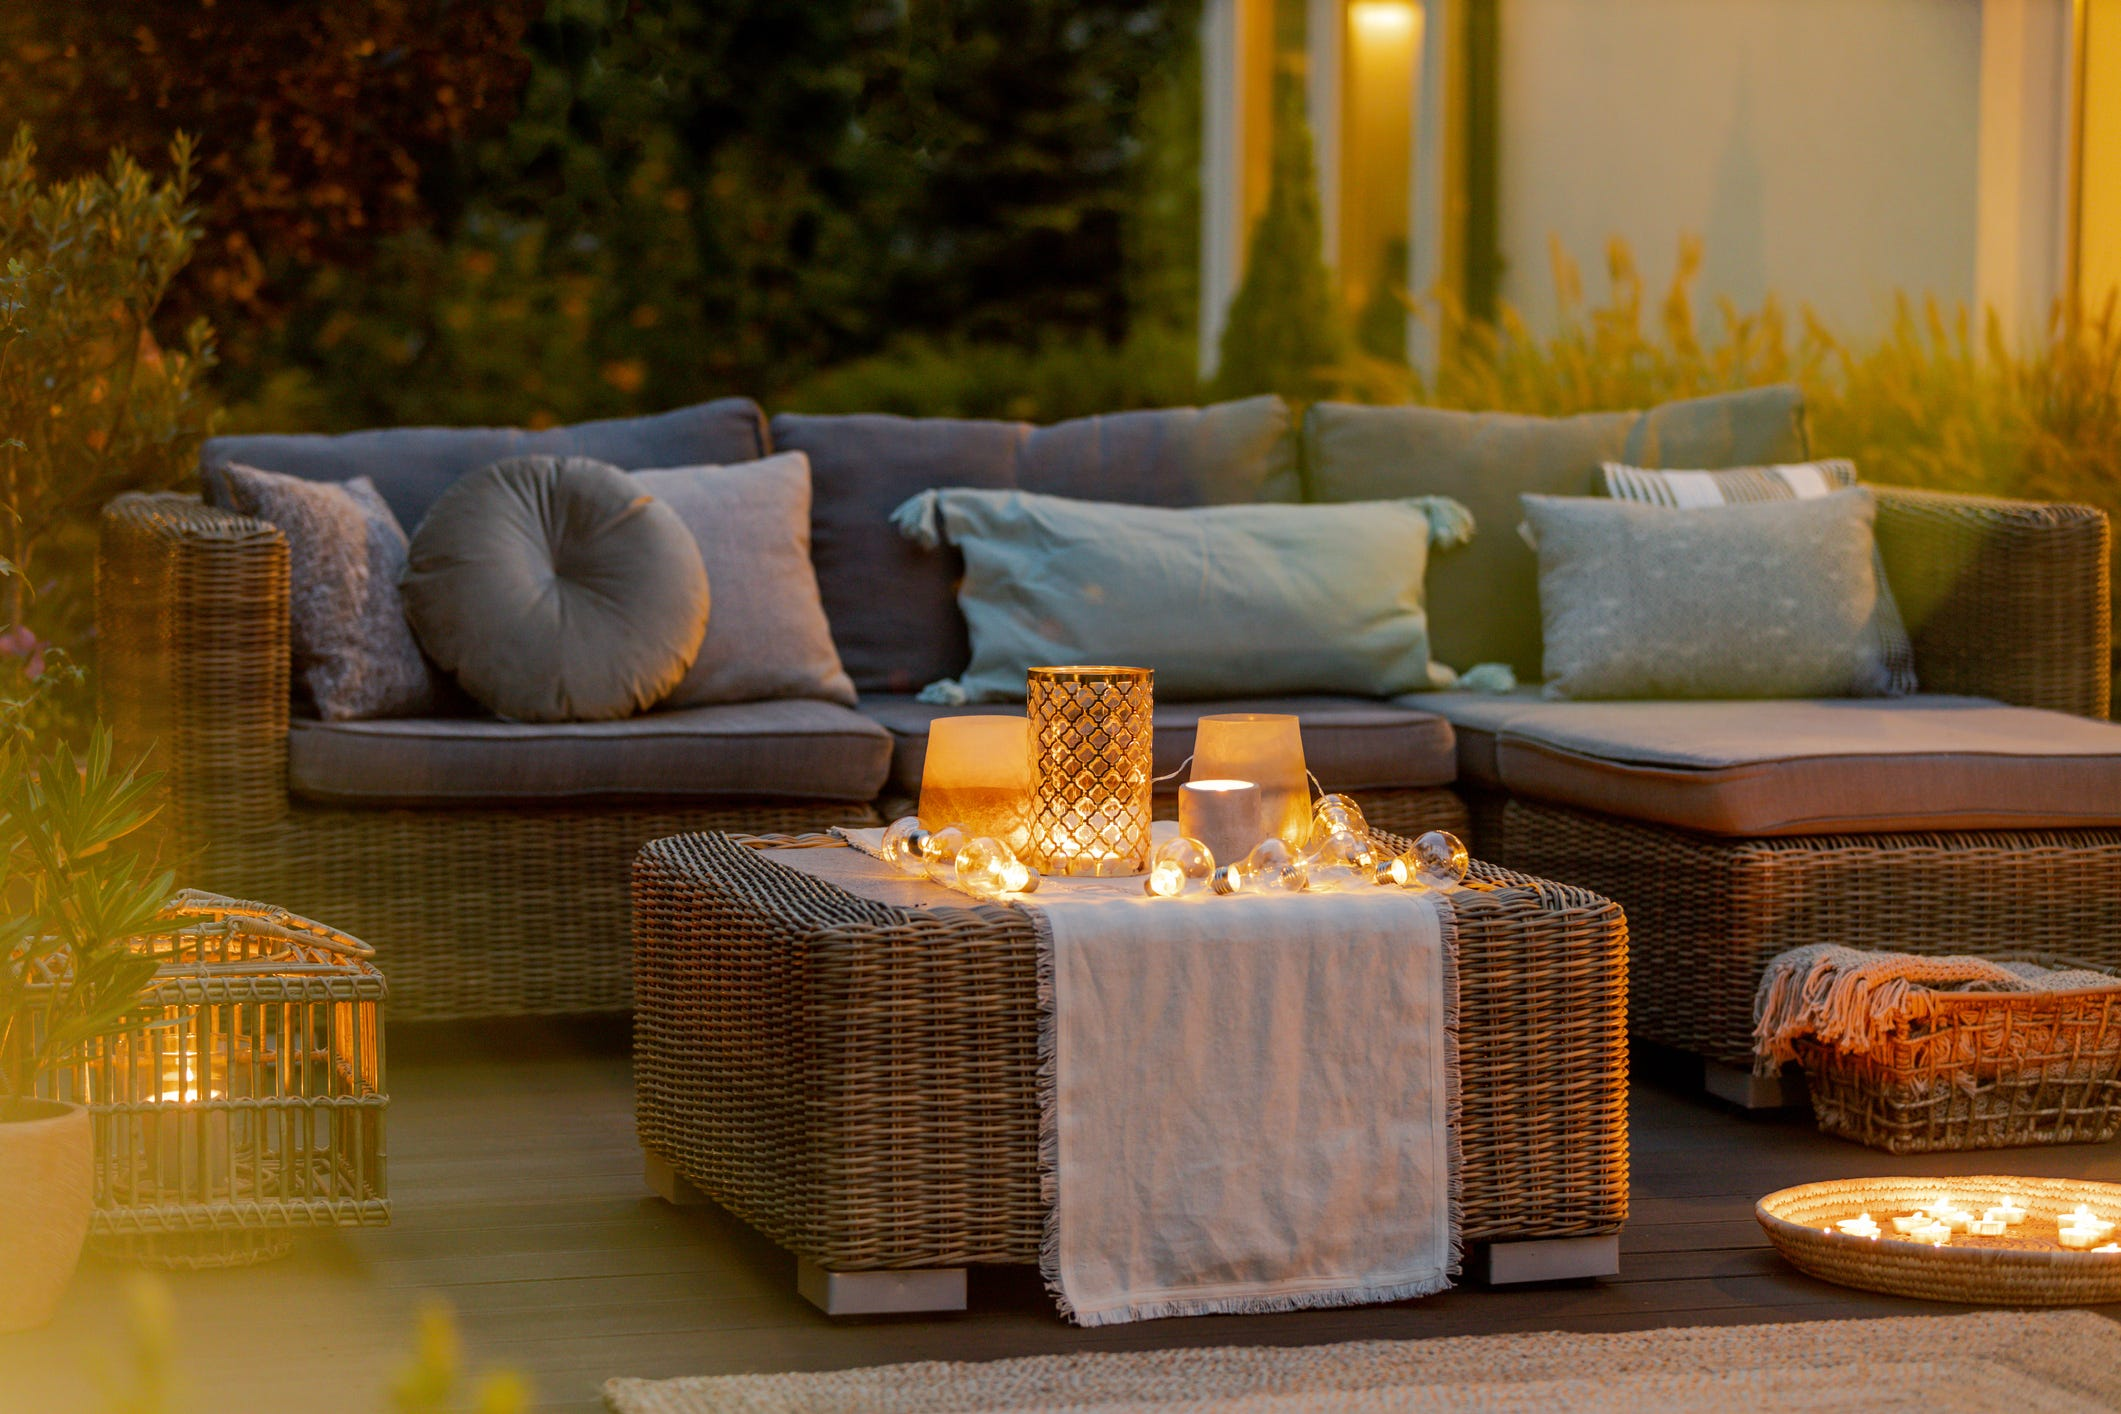 Patio furniture Shop the best deals from Wayfair, Kohl's and more